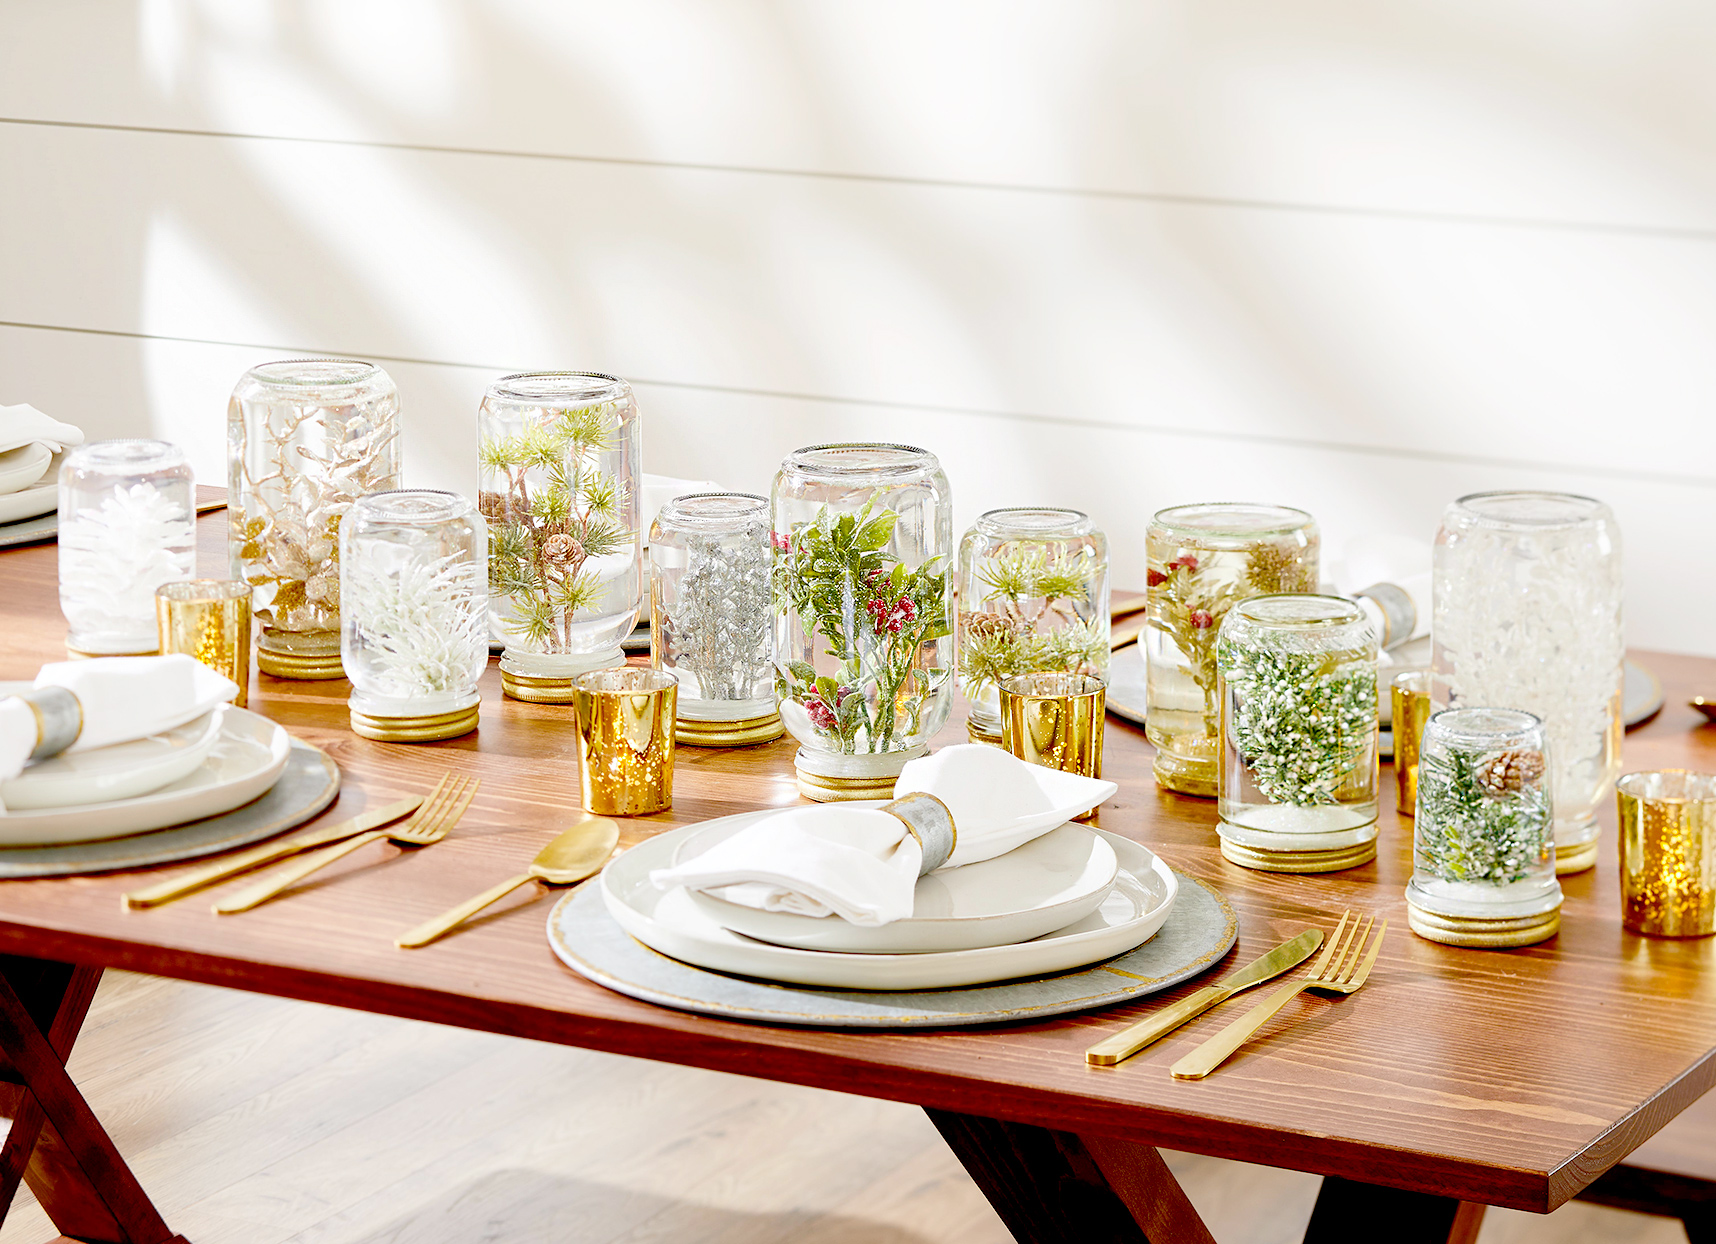 Table setting with jar décor